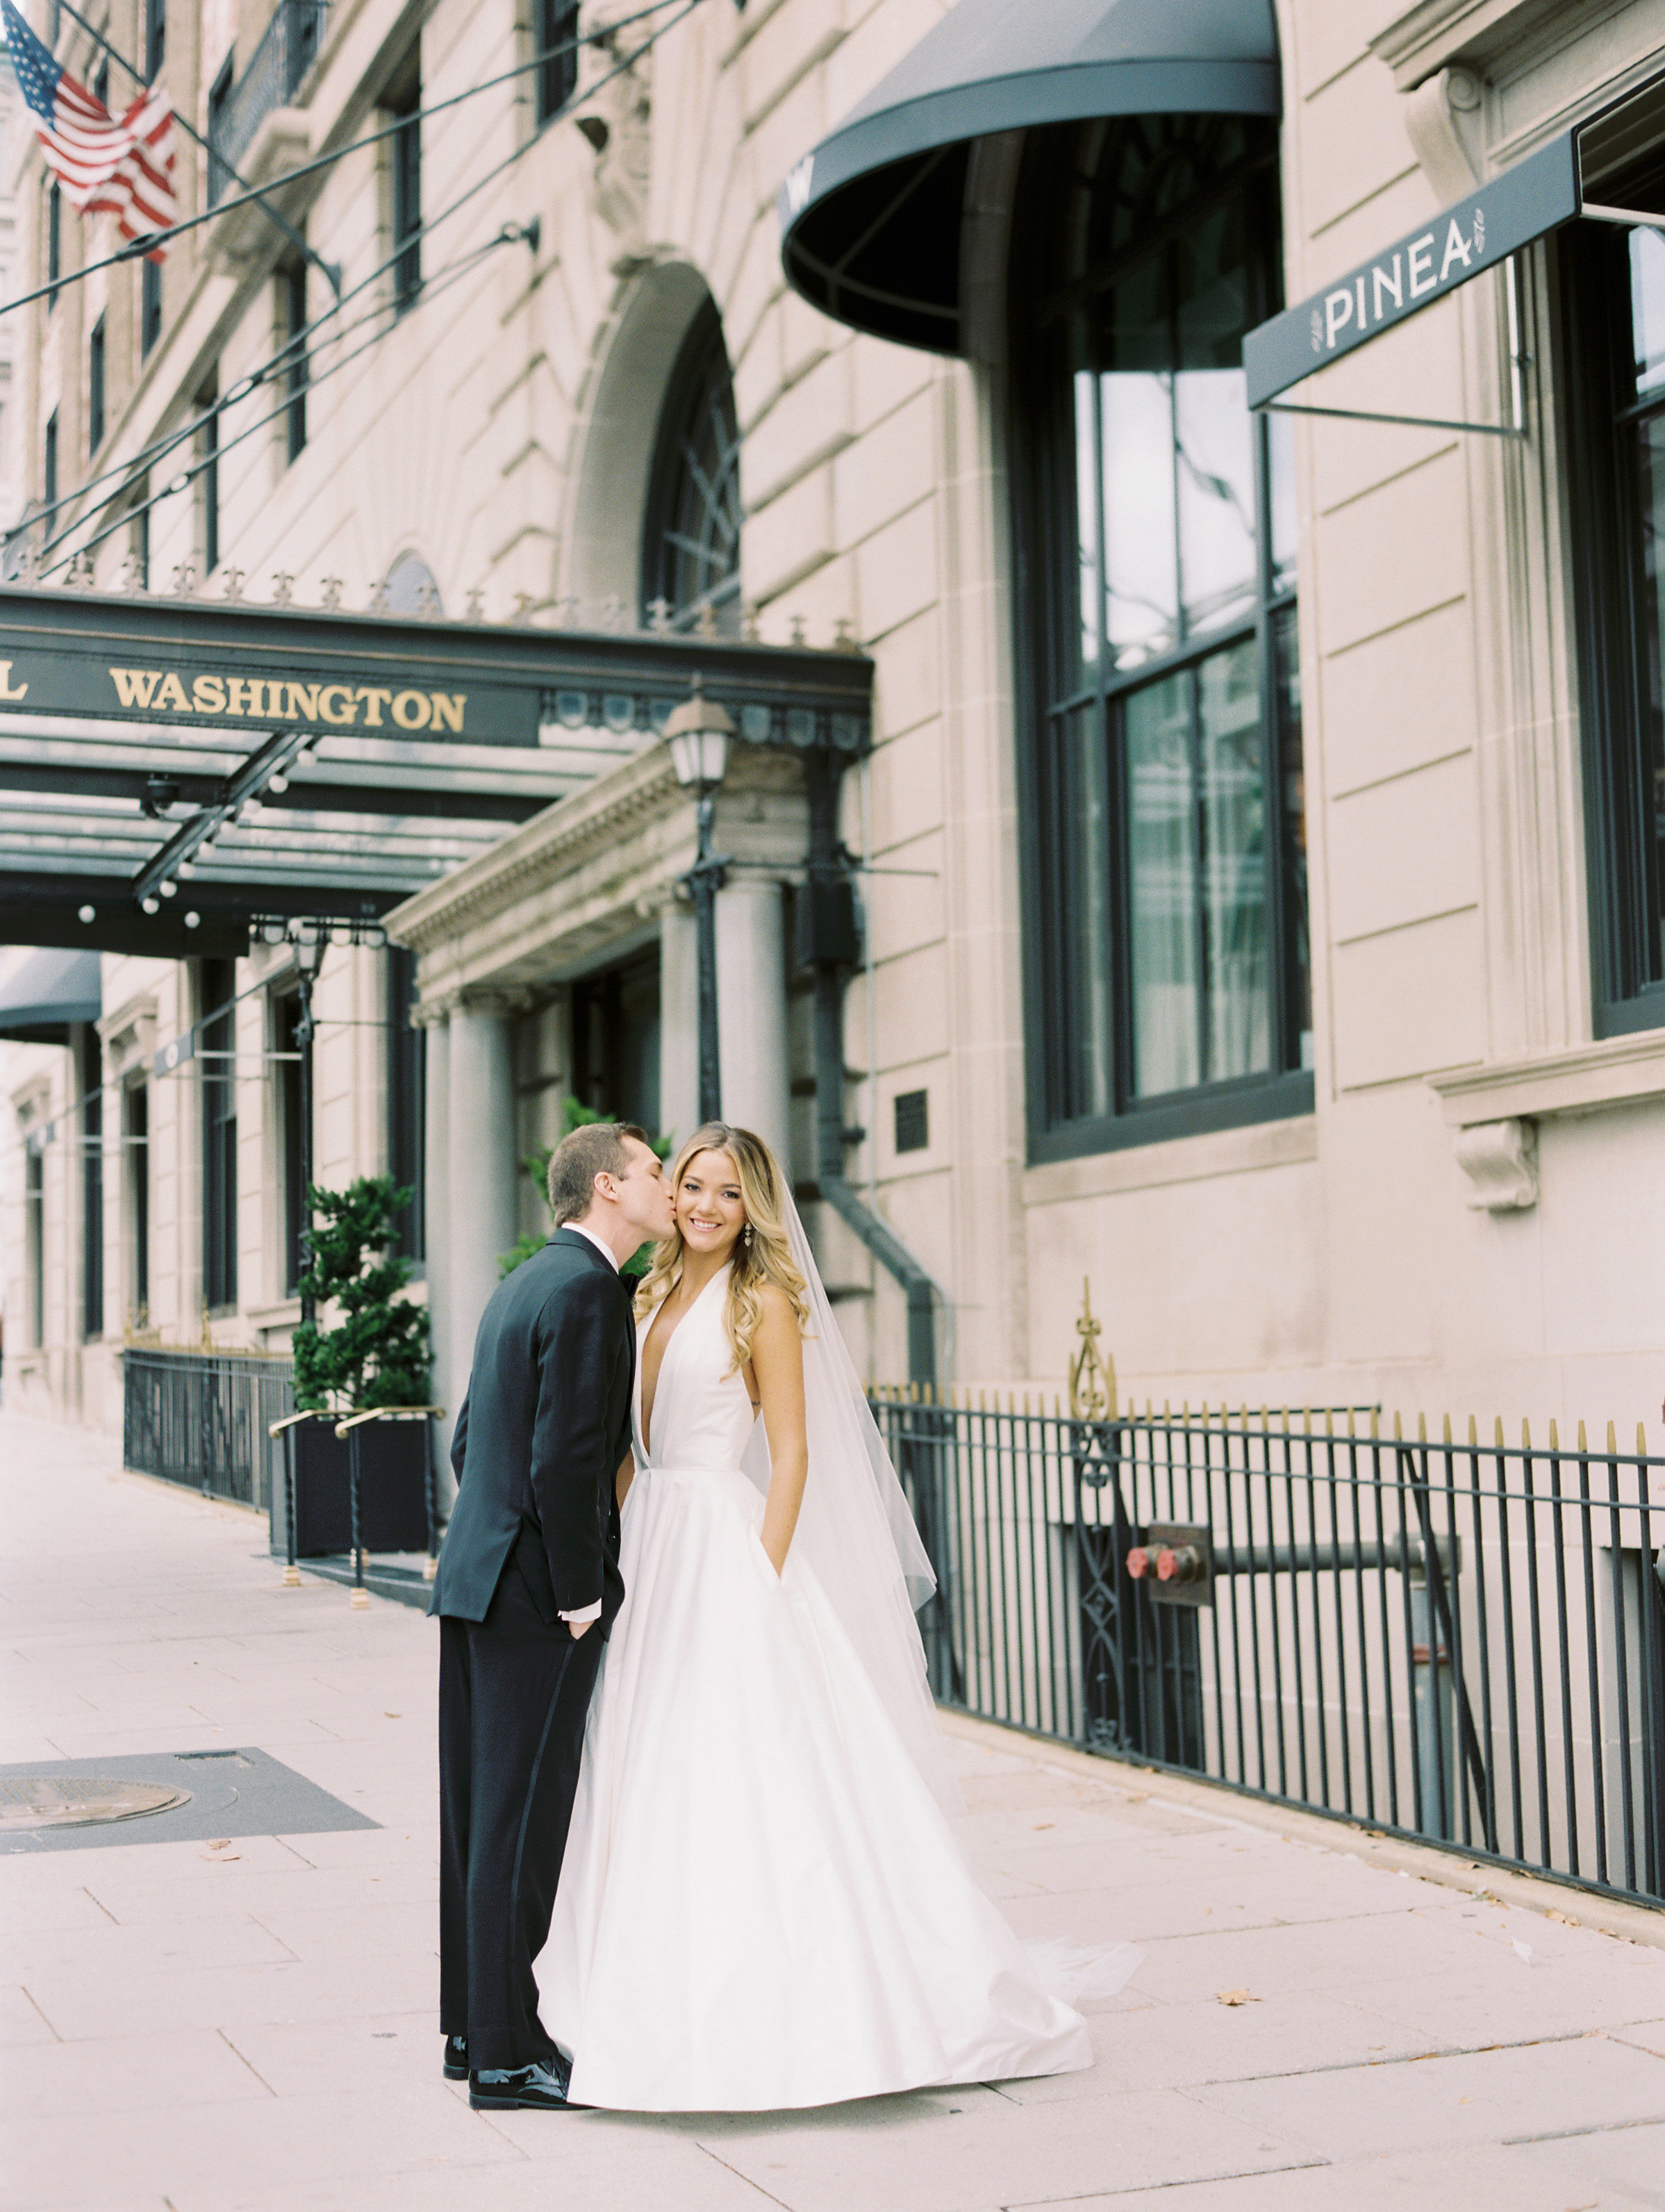 bride and groom in washington dc plunging neckline wedding dress with pockets